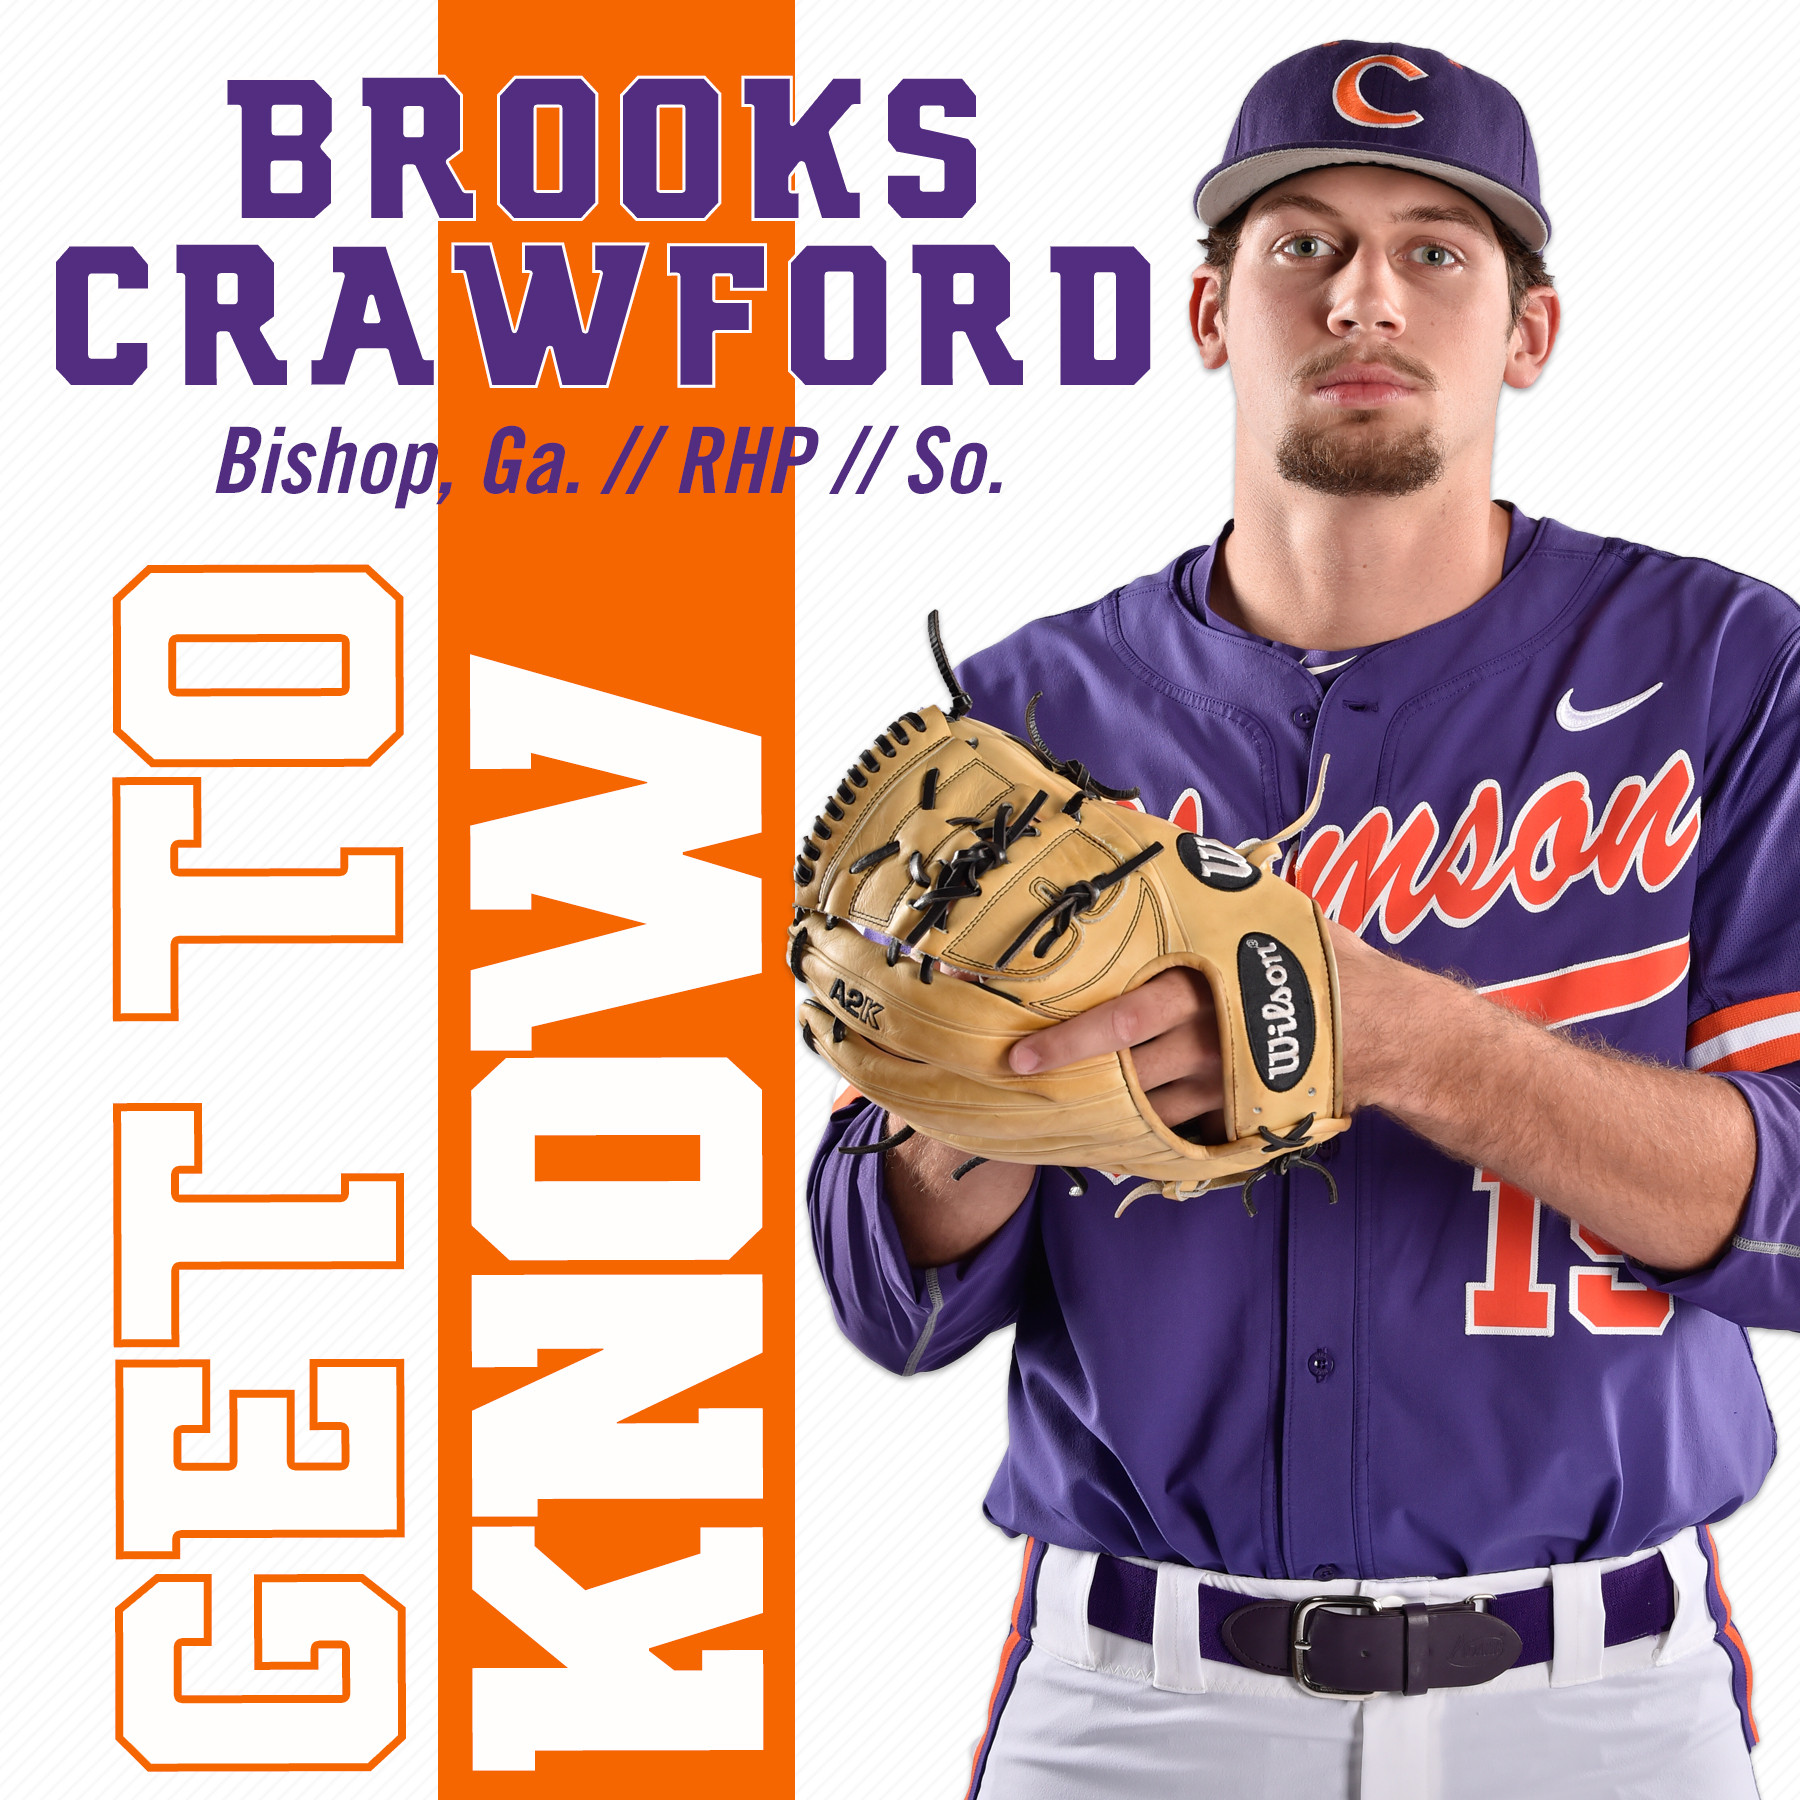 Get To Know Brooks Crawford